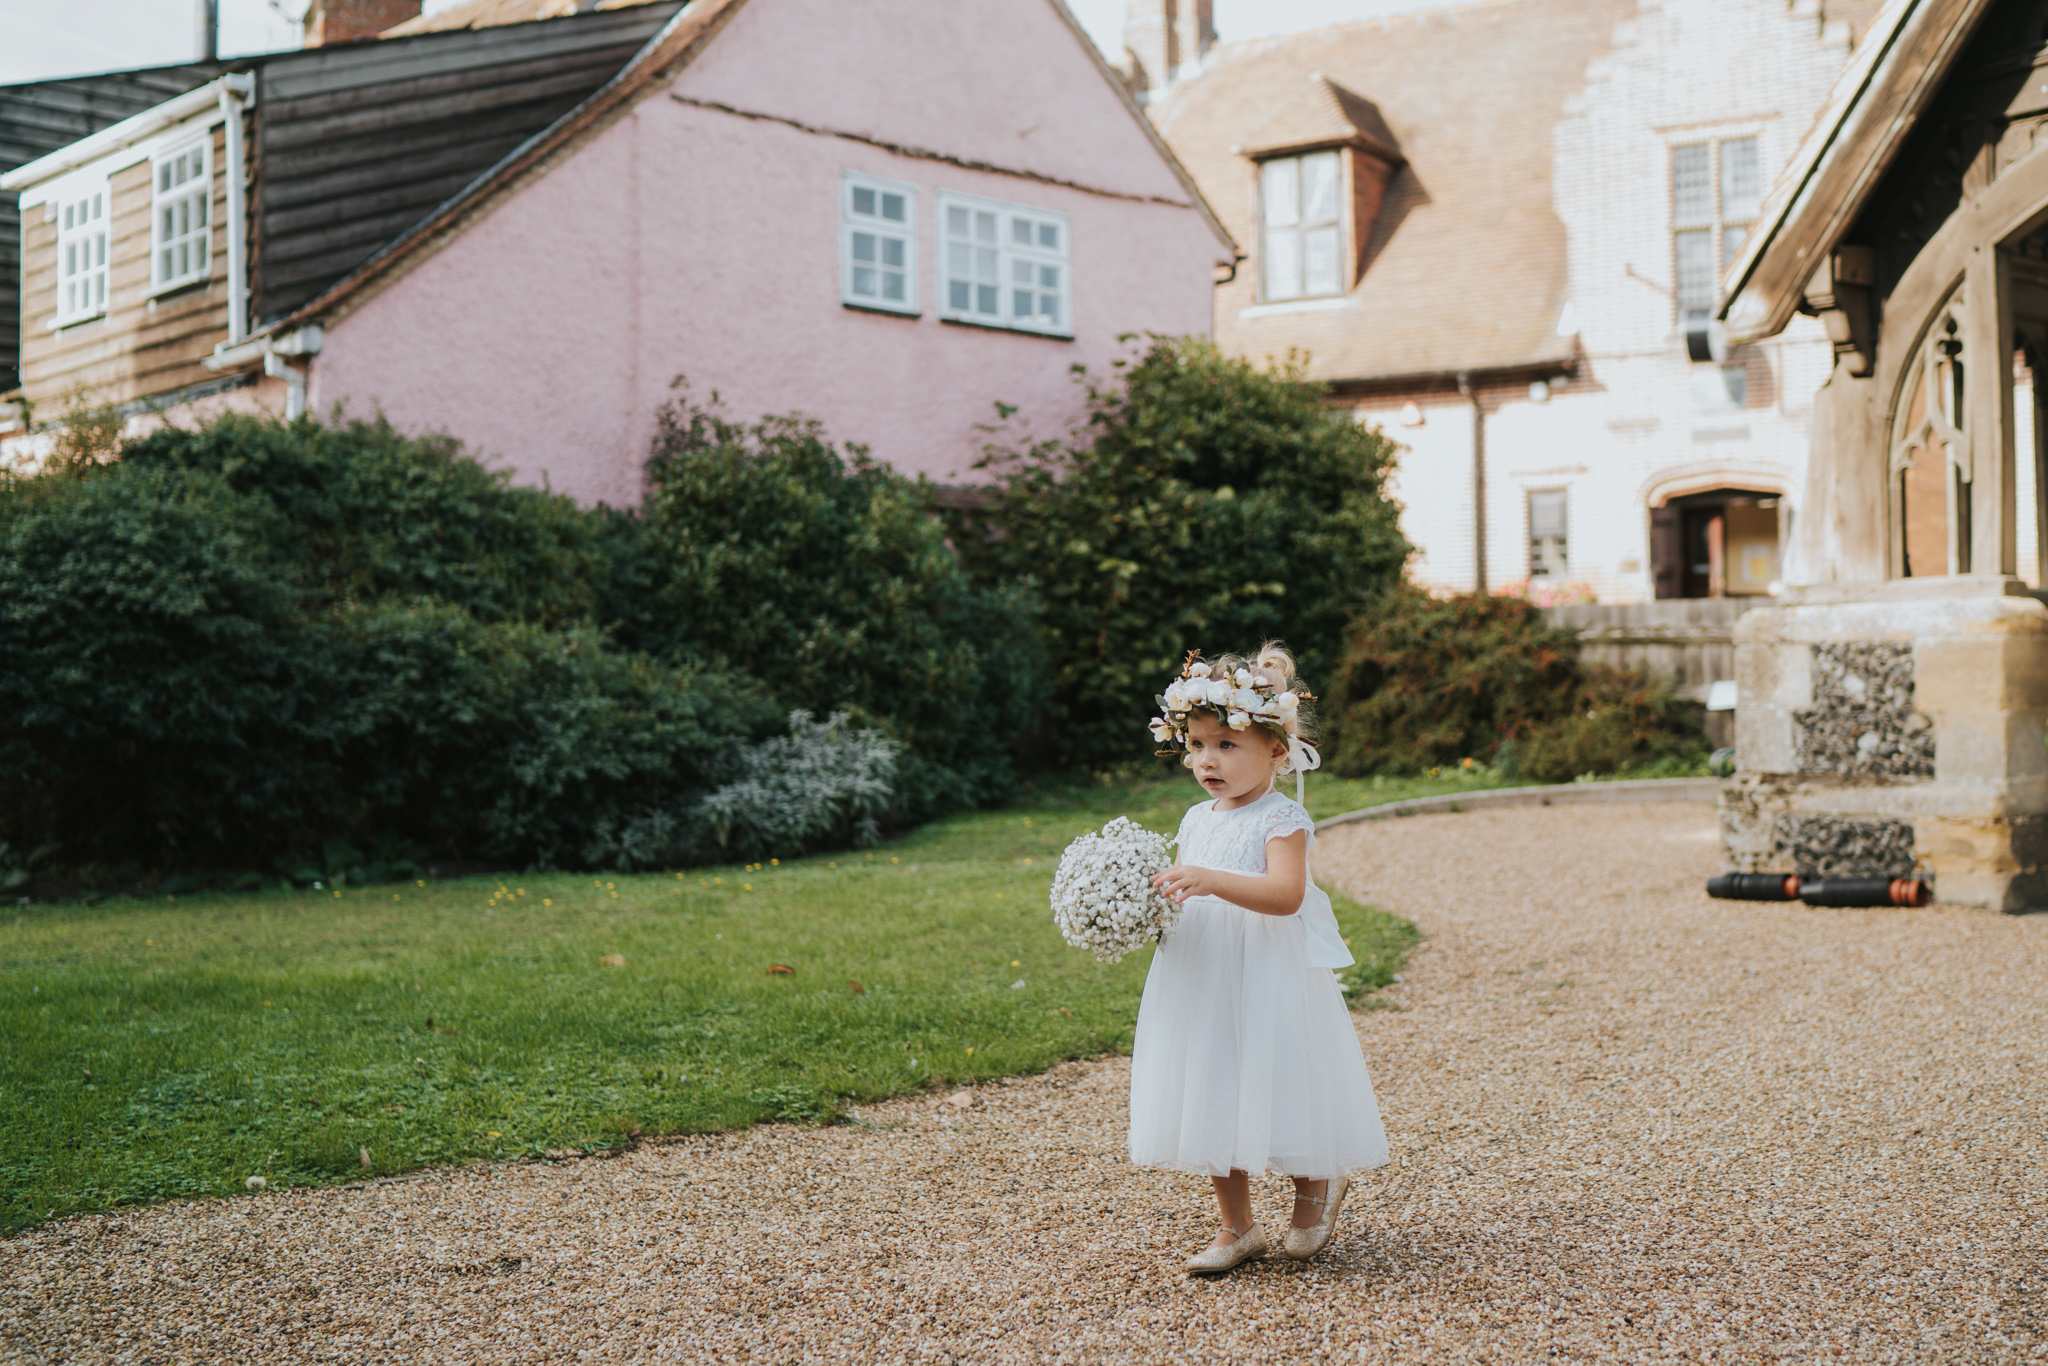 intimate-english-church-wedding-sarah-alex-colchester-essex-grace-elizabeth-colchester-essex-alternative-wedding-lifestyle-photographer-essex-suffolk-norfolk-devon (27 of 92).jpg